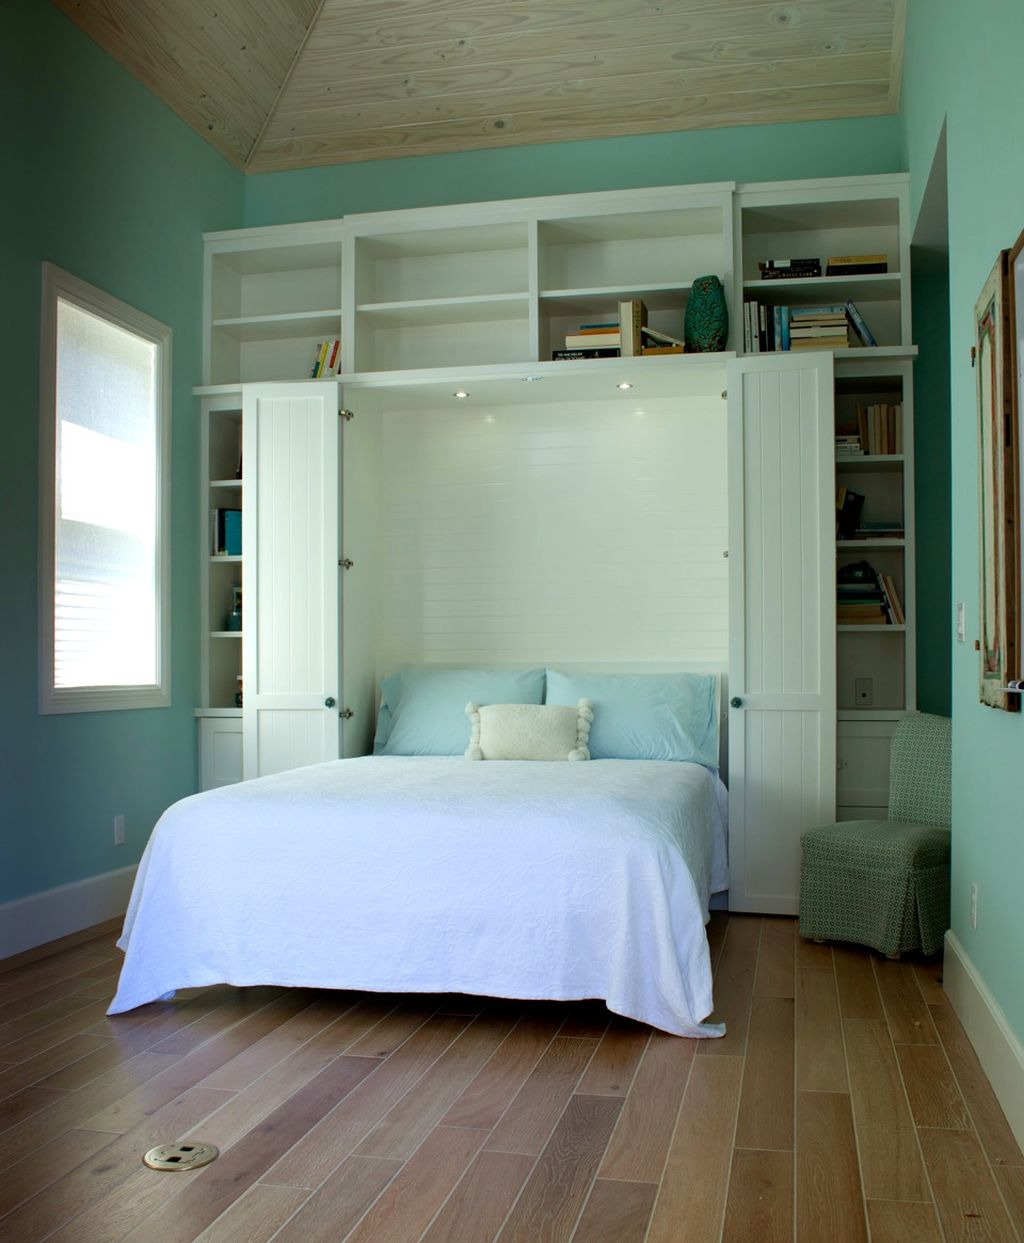 small bedroom bed ideas 20 space saving murphy bed design ideas for small rooms 17100